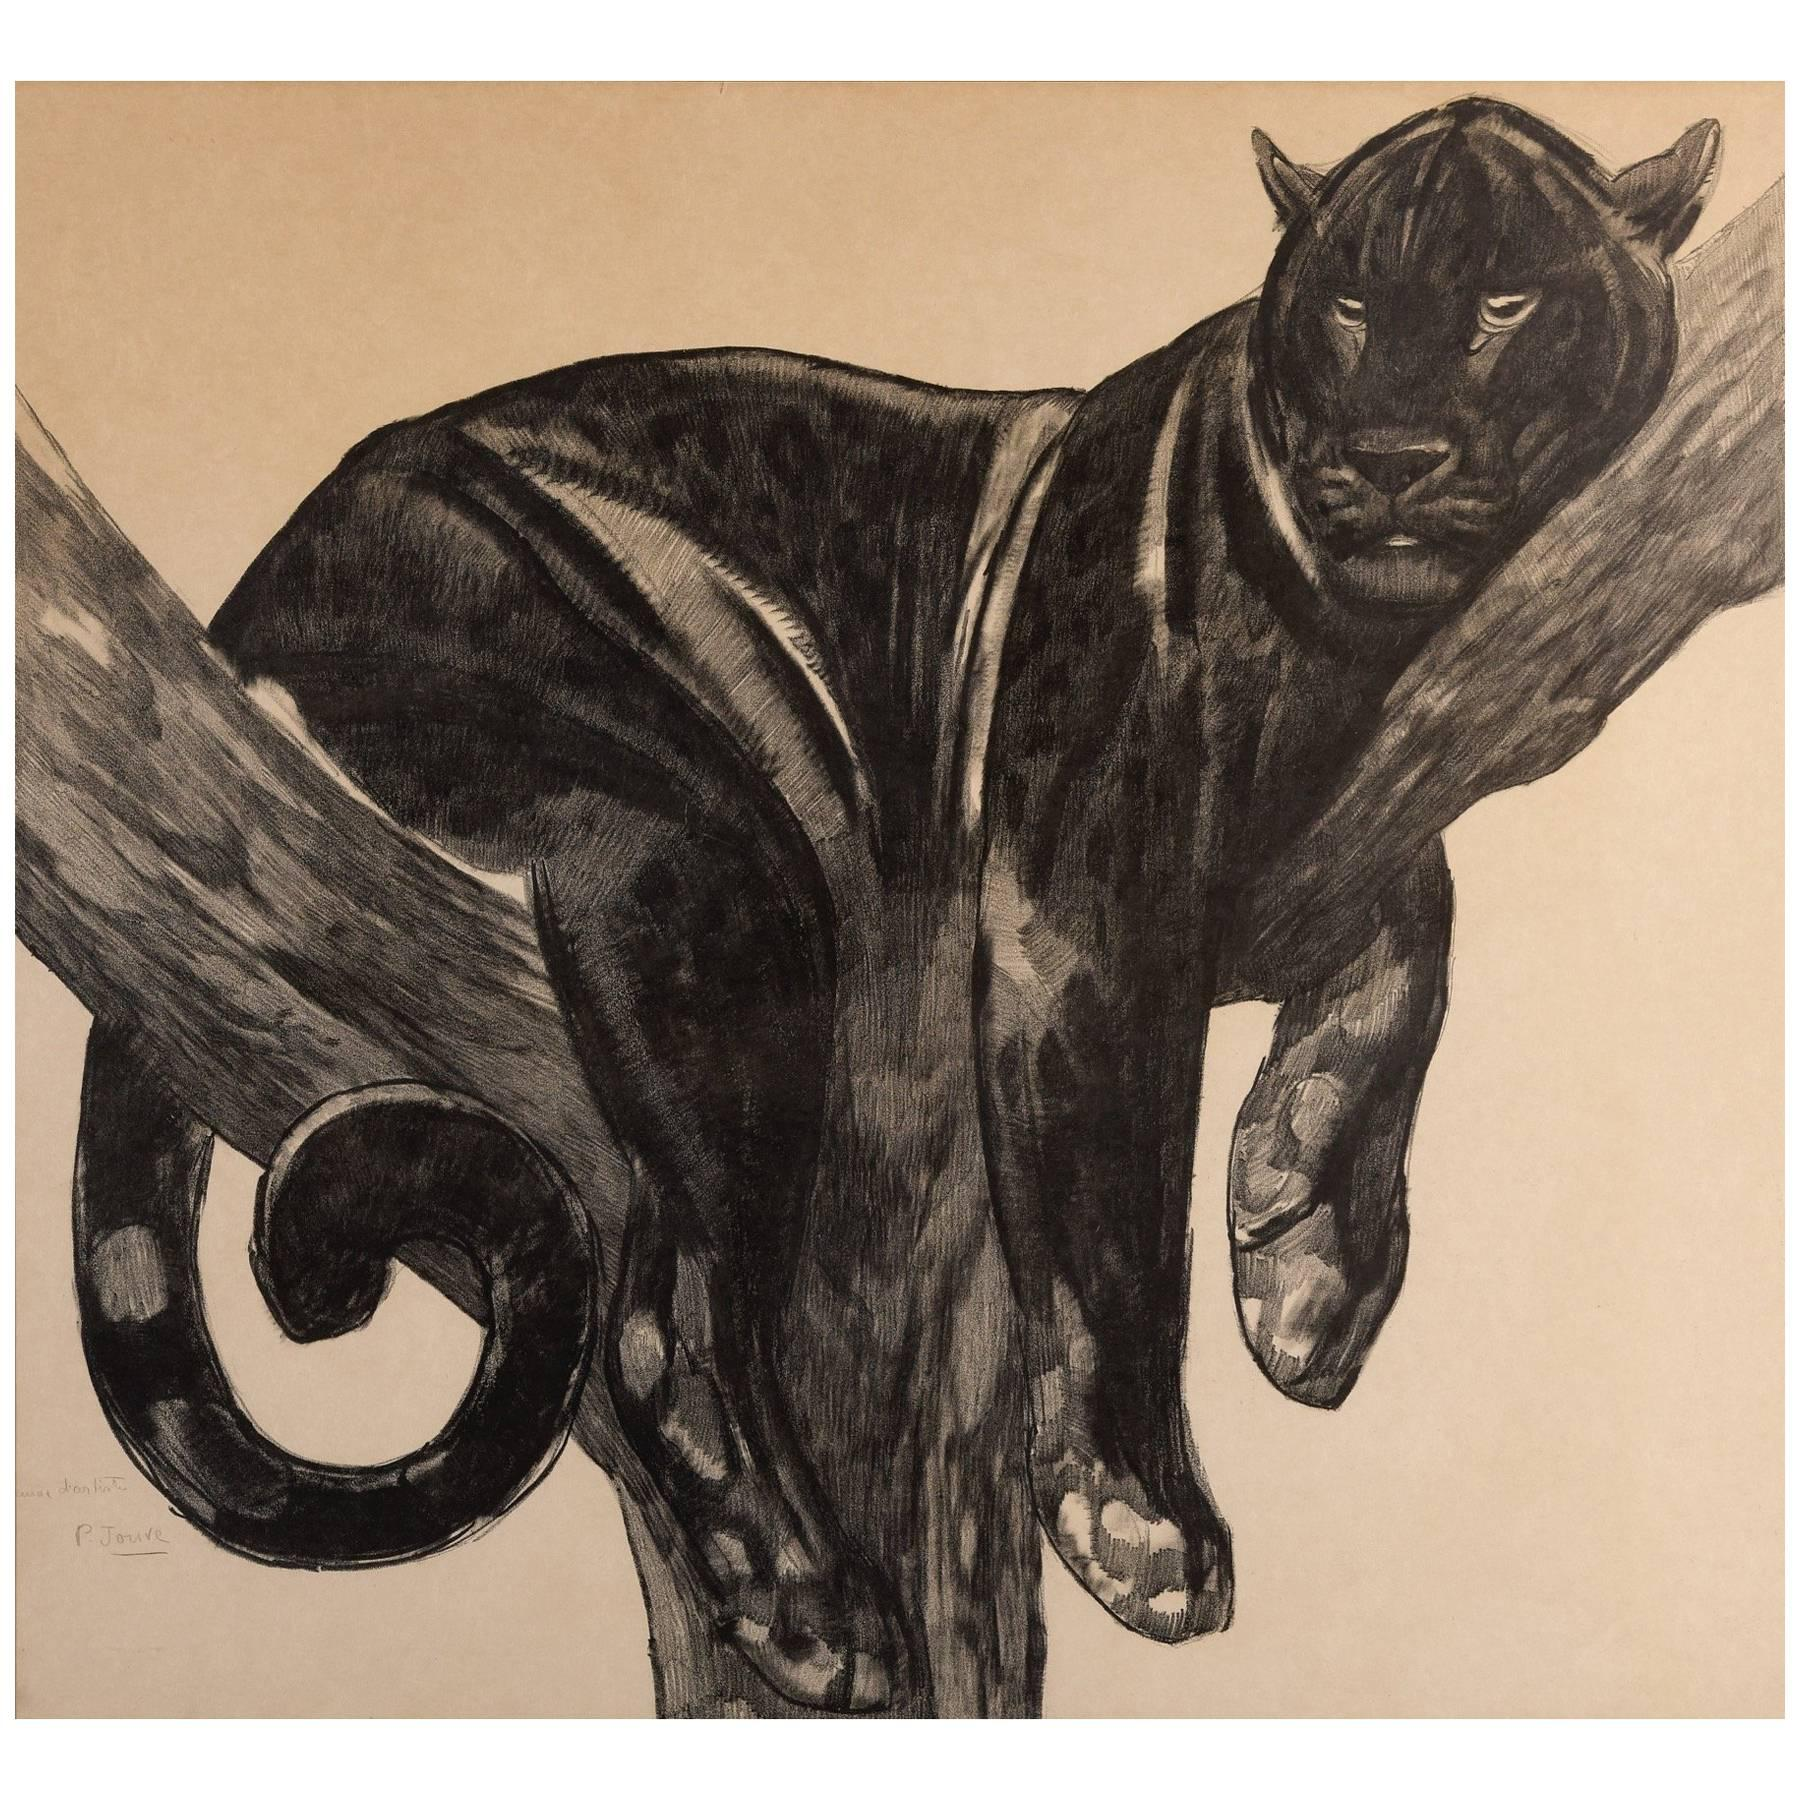 Panther on a Branch, Original Lithograph by Paul Jouve, circa 1927